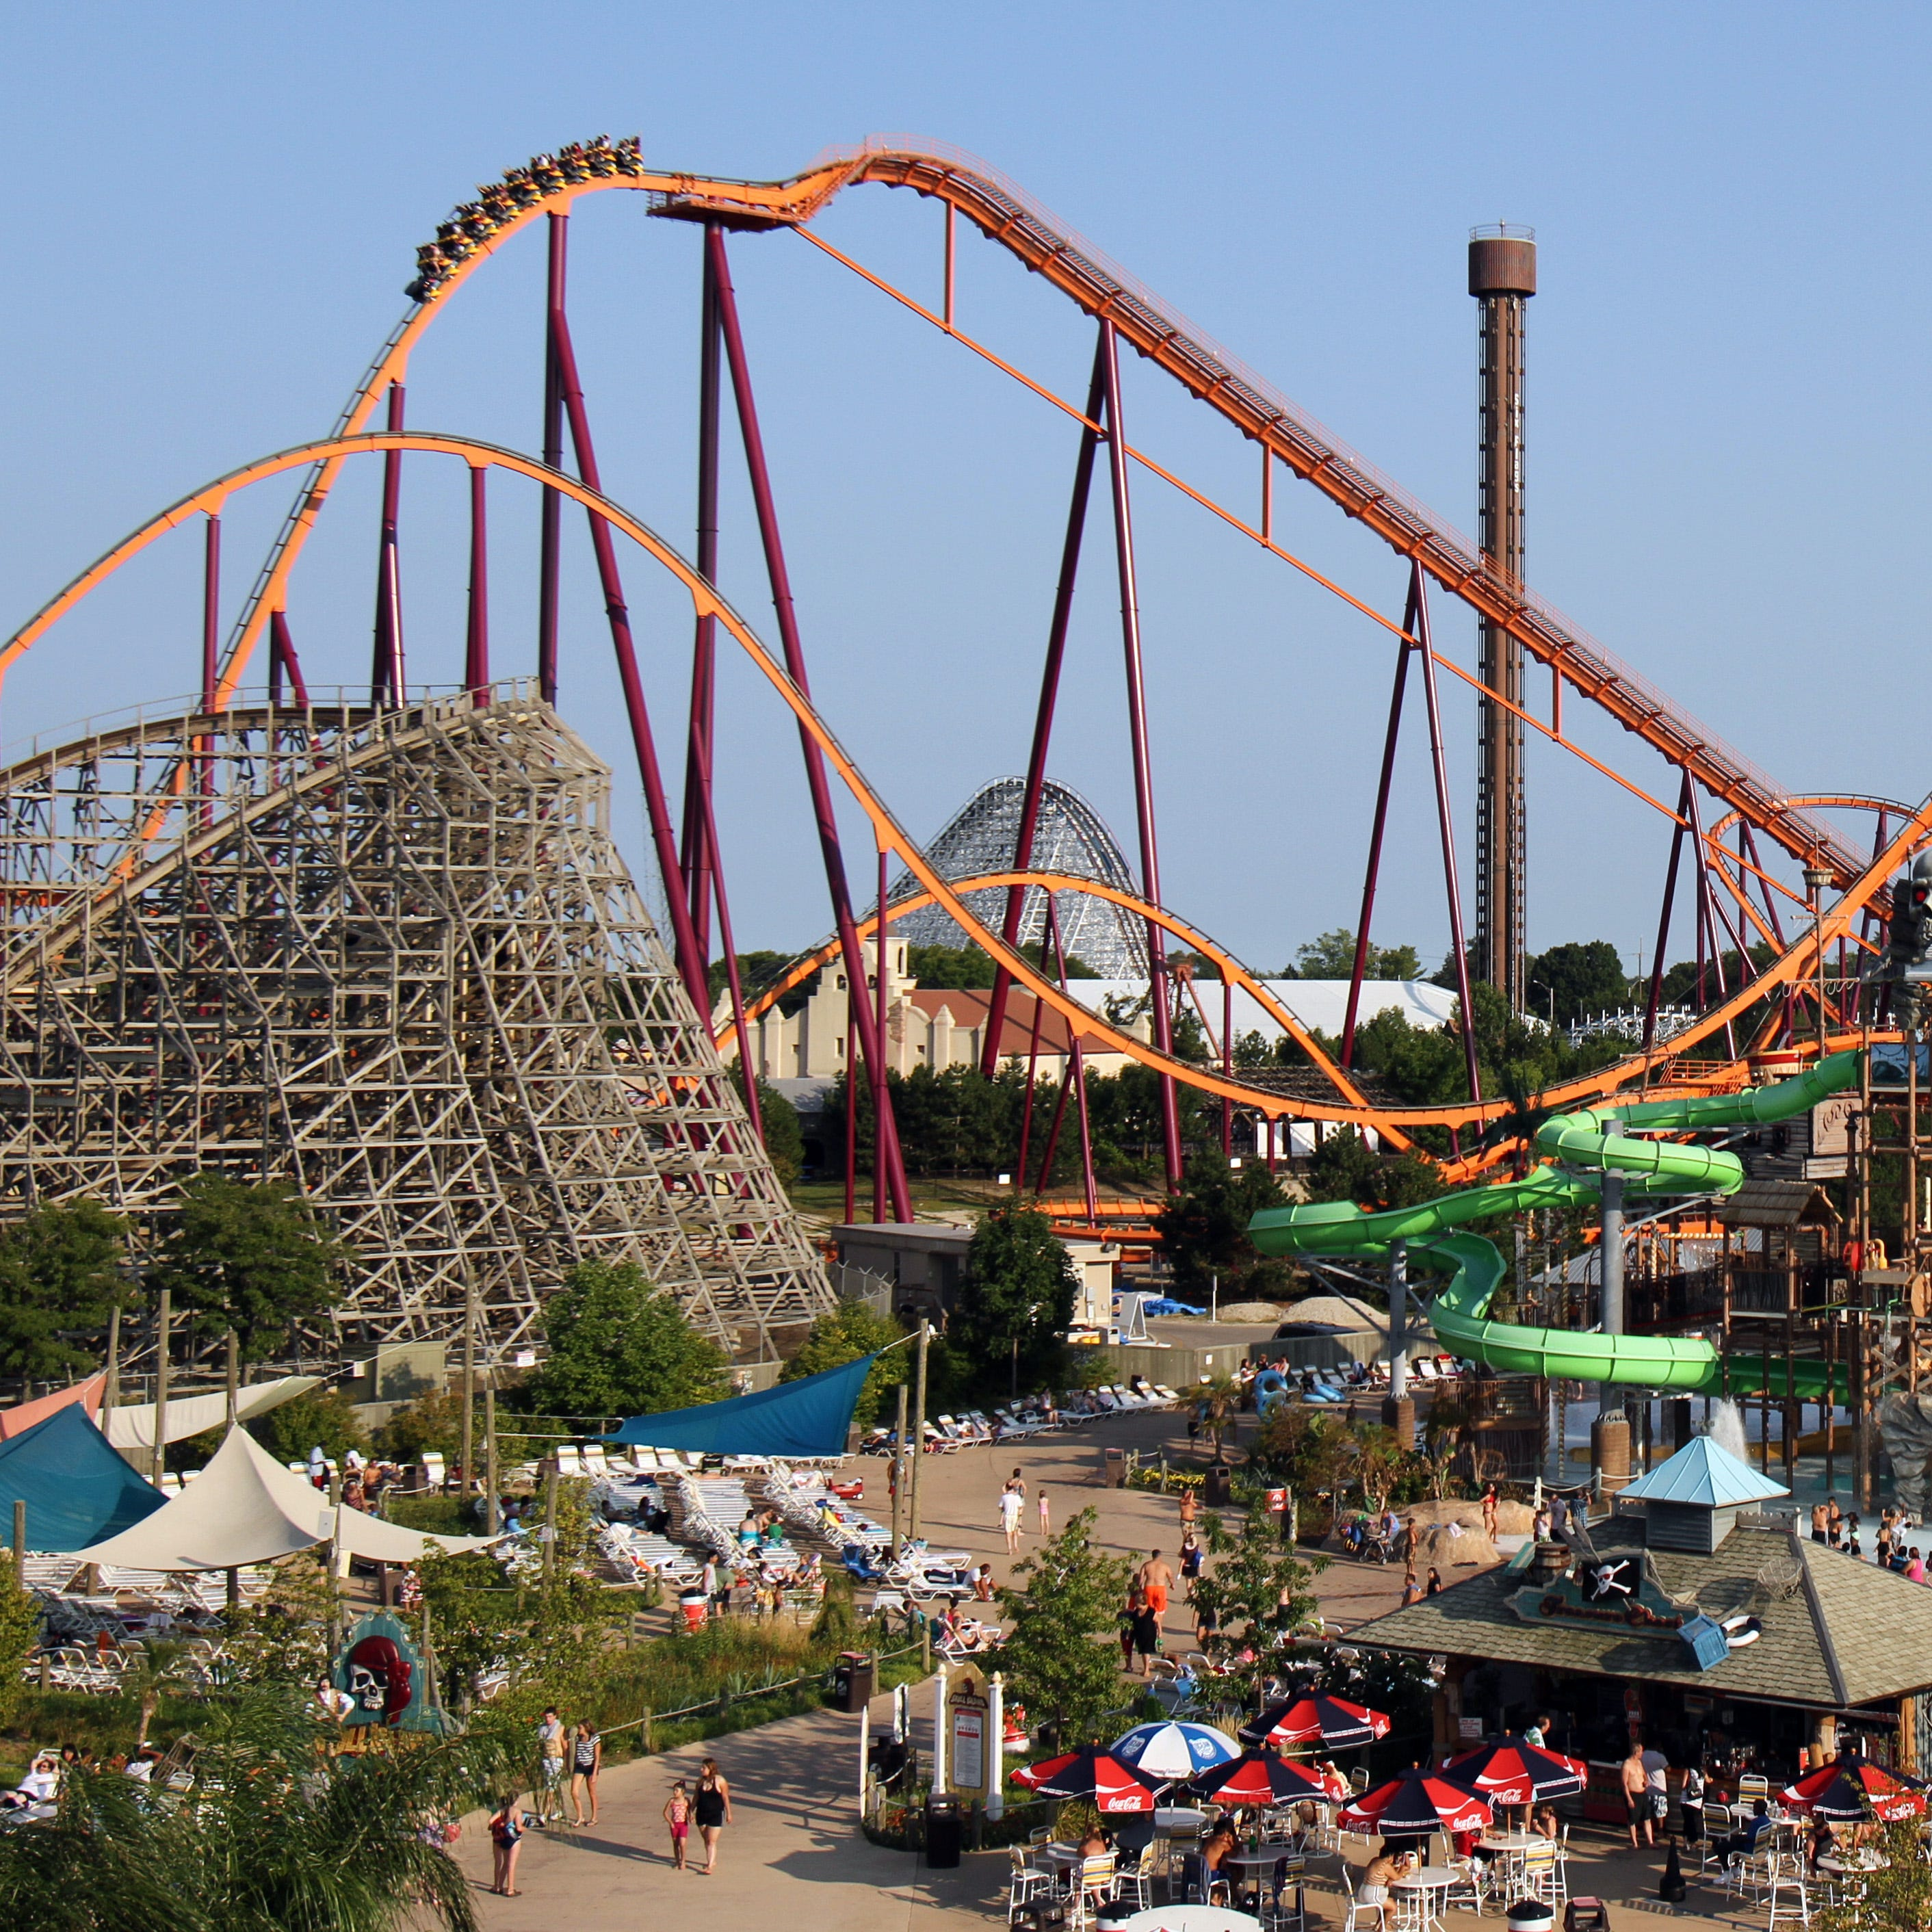 Six Flags Great America's autism awareness day will include quiet areas and special ride passes